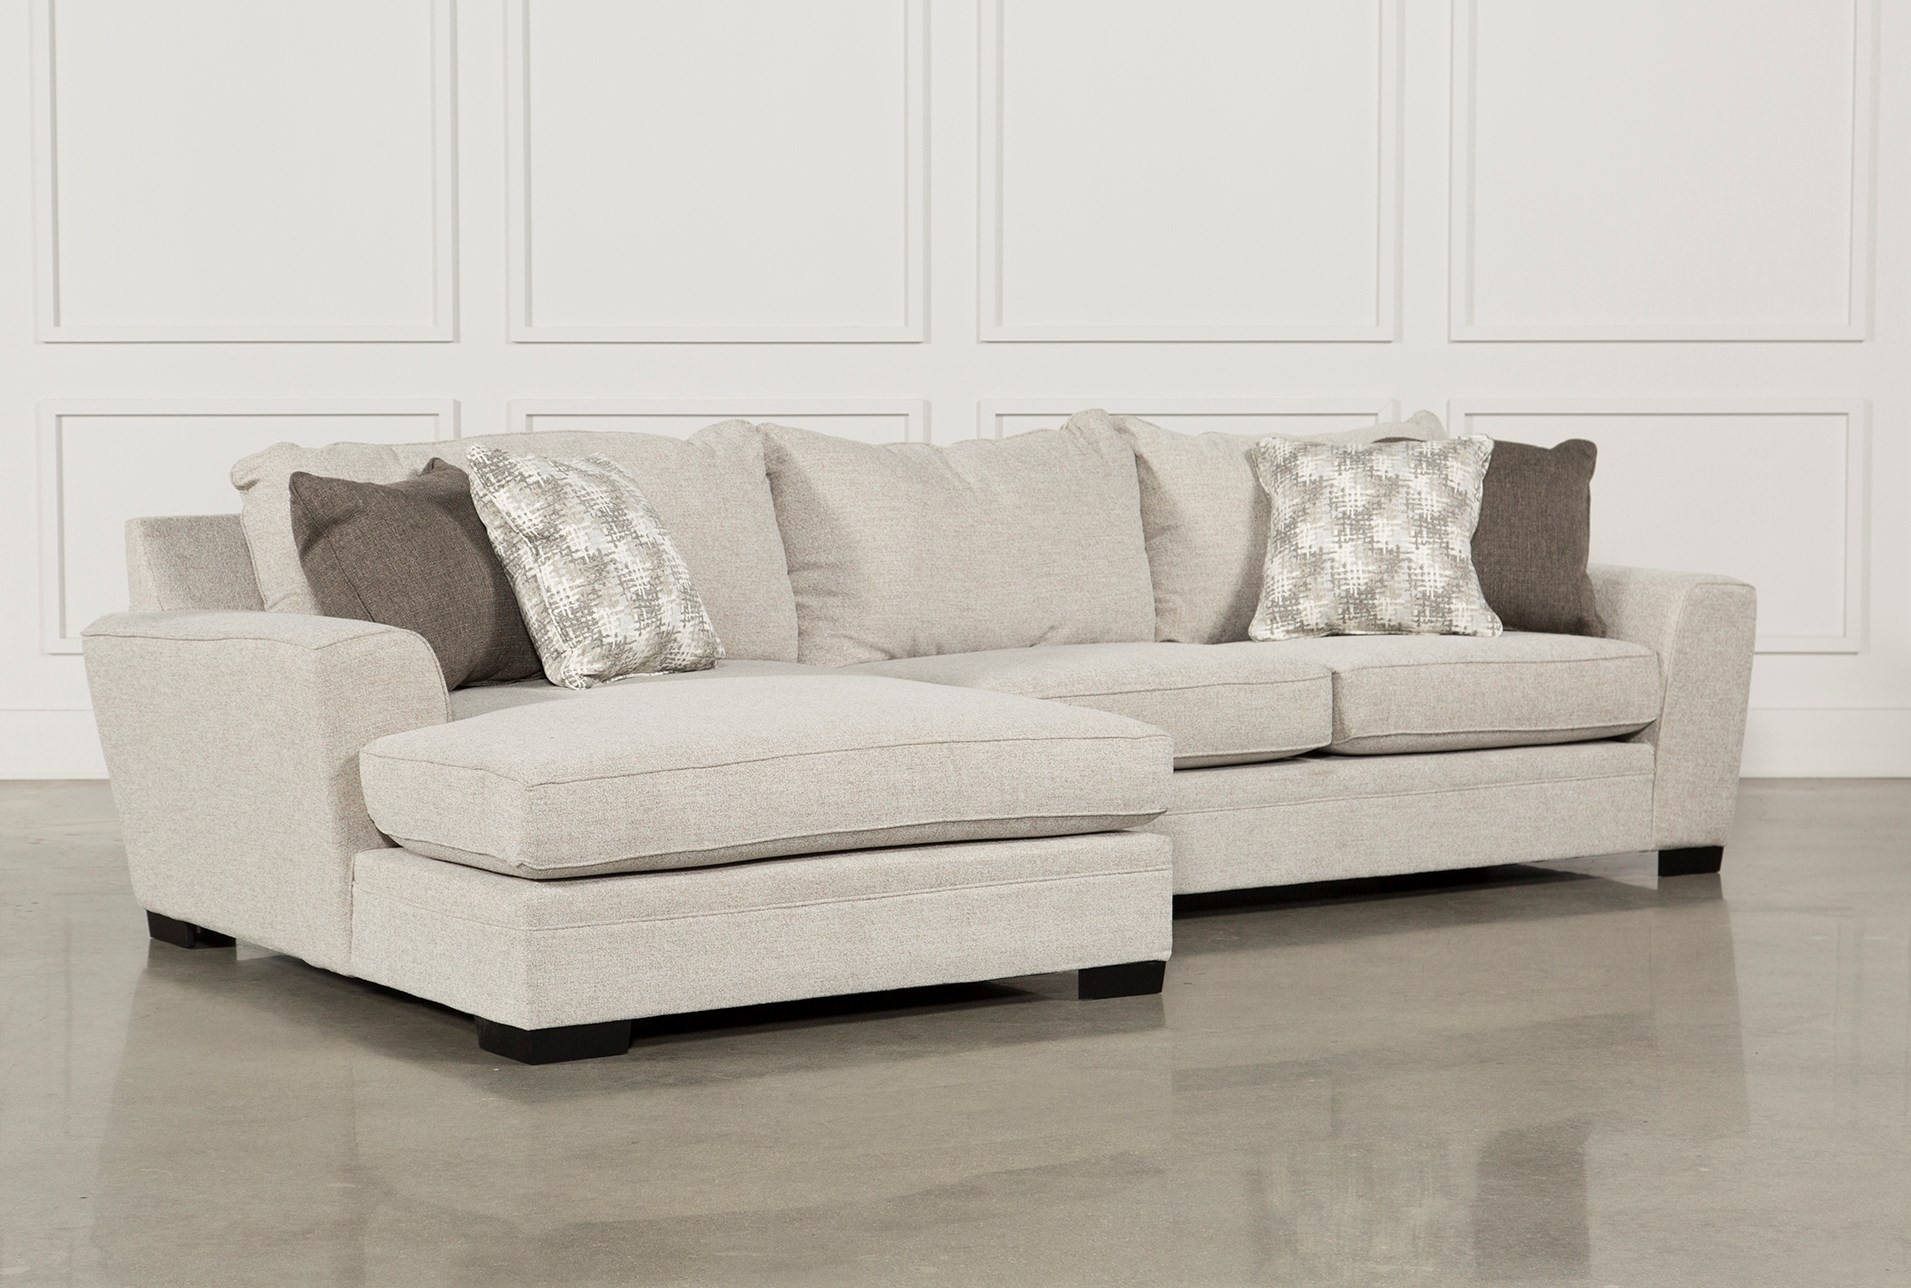 Living Spaces Sectional Sofas - Implantologiabogota.co within Aspen 2 Piece Sleeper Sectionals With Laf Chaise (Image 18 of 30)